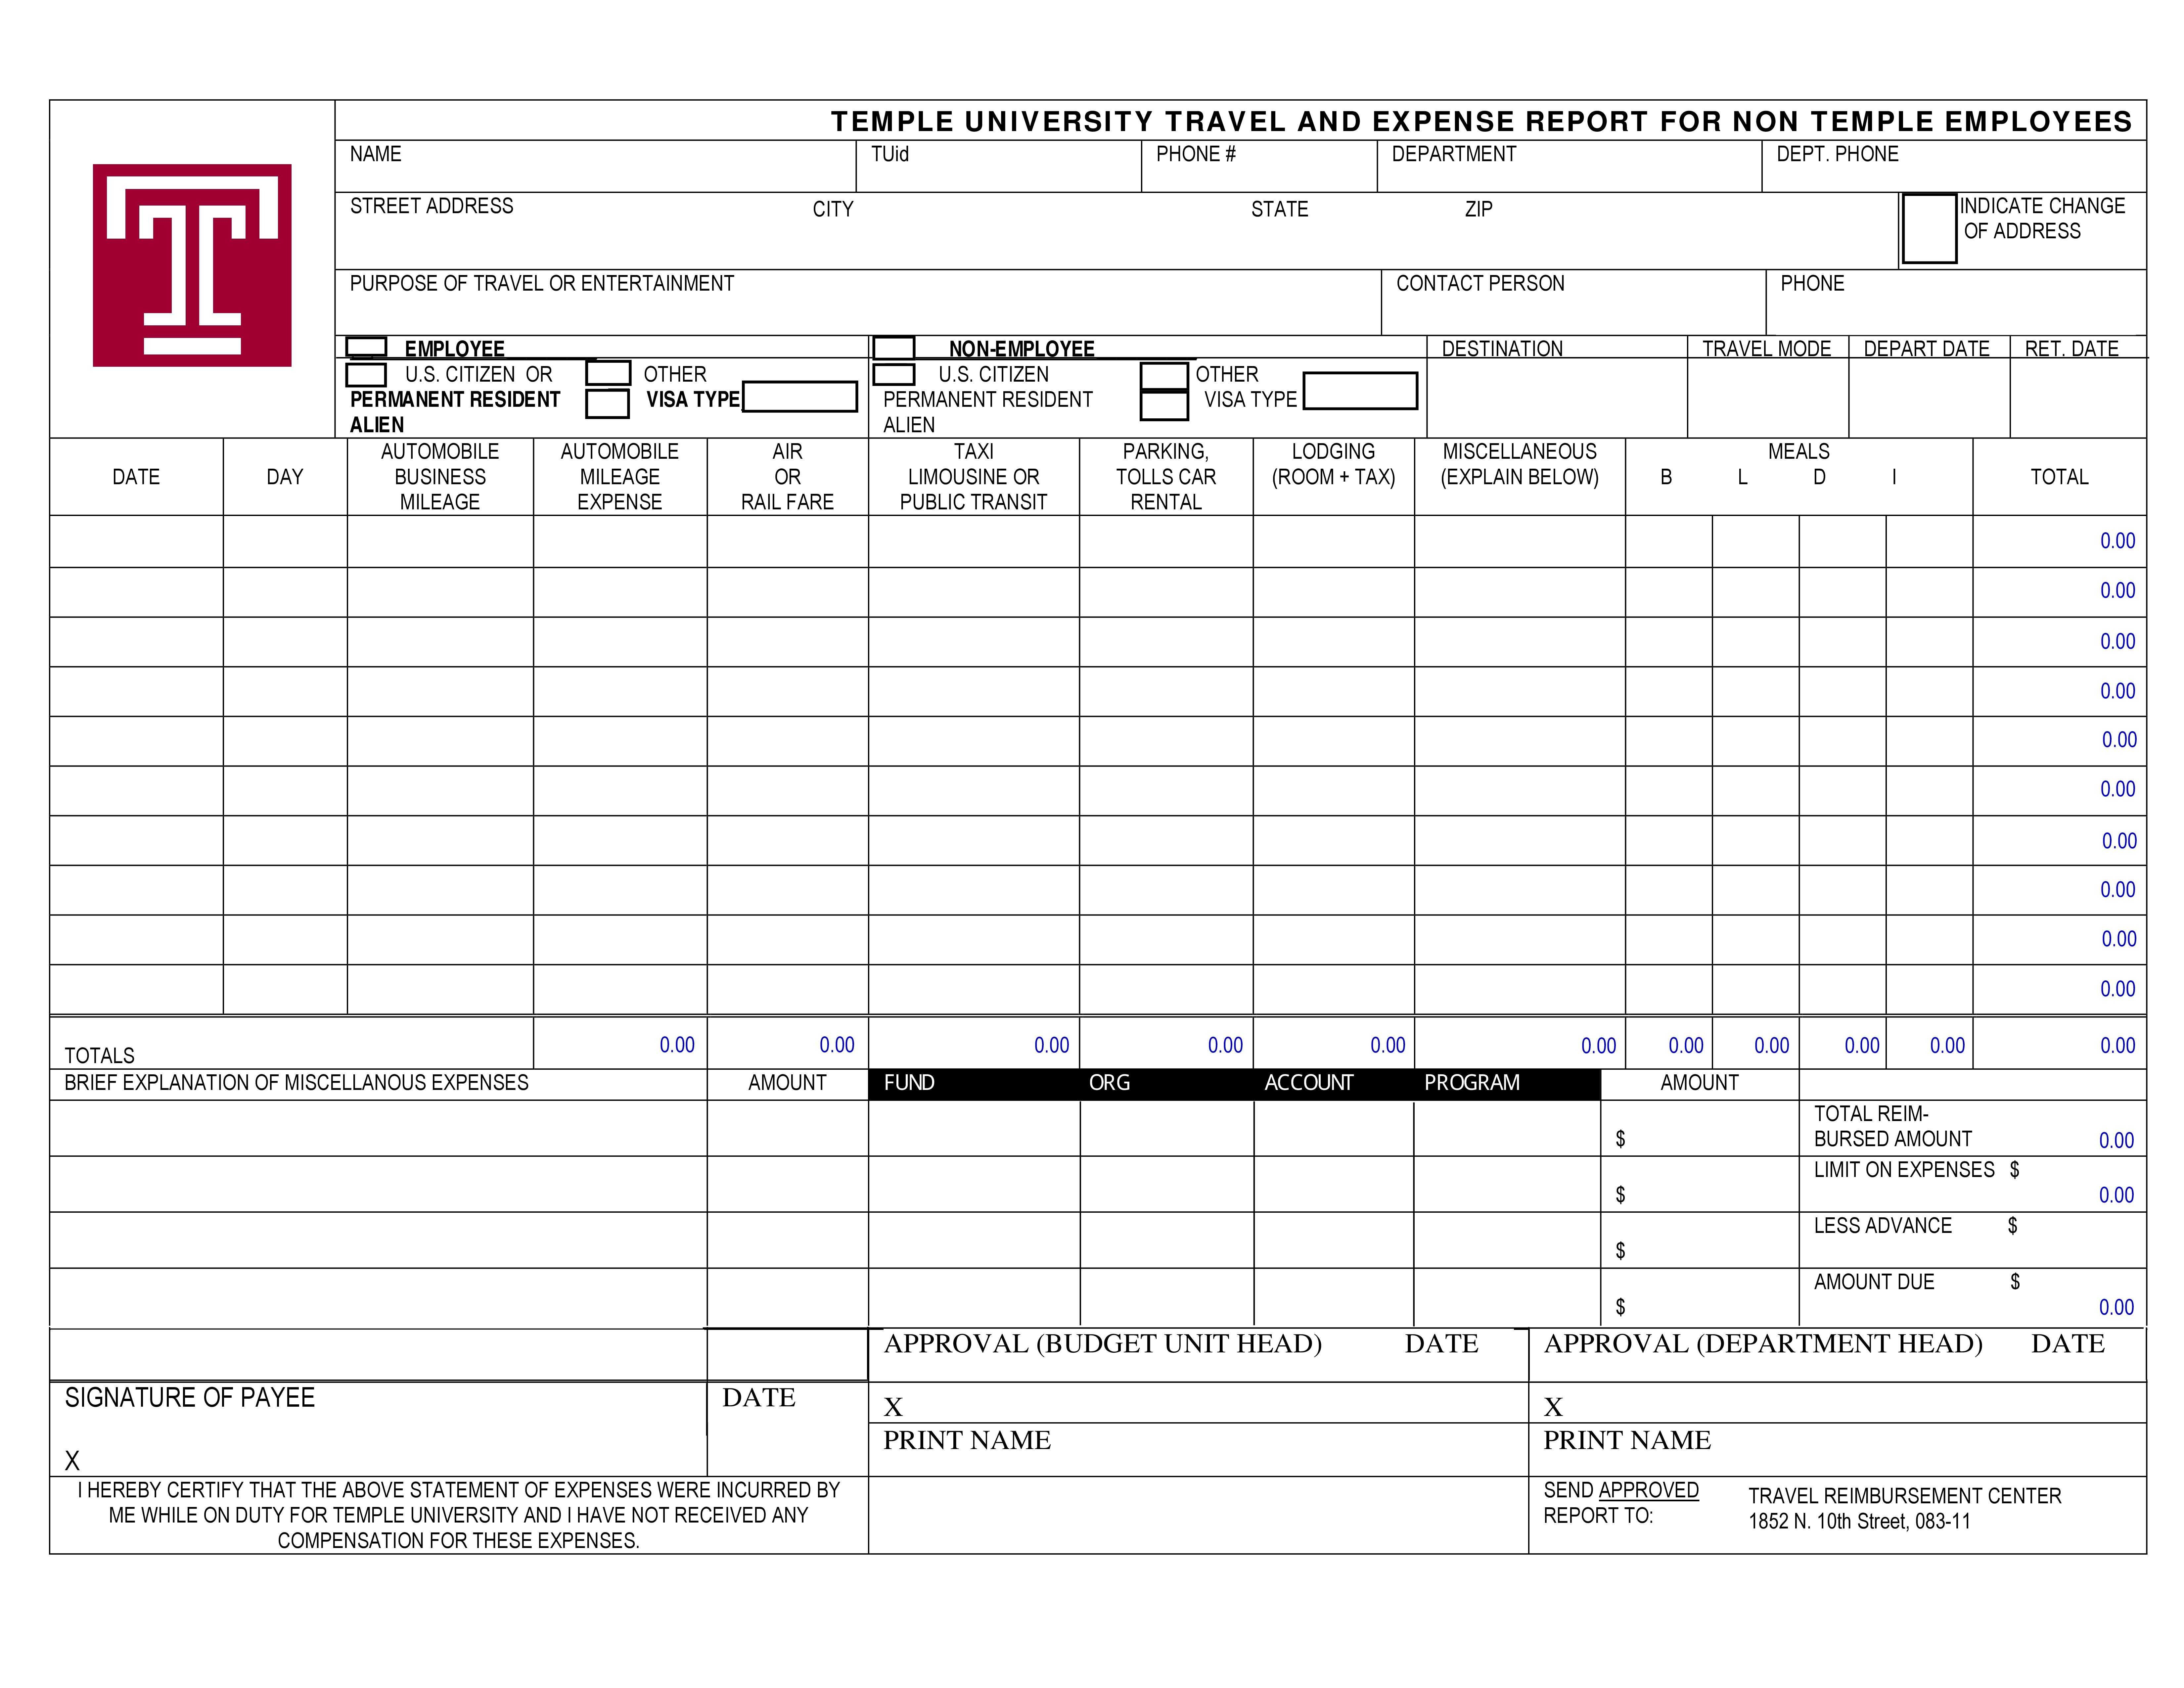 Expense Report Templates To Help You Save Money ᐅ Template Lab Within Expense Report Template Excel 2010